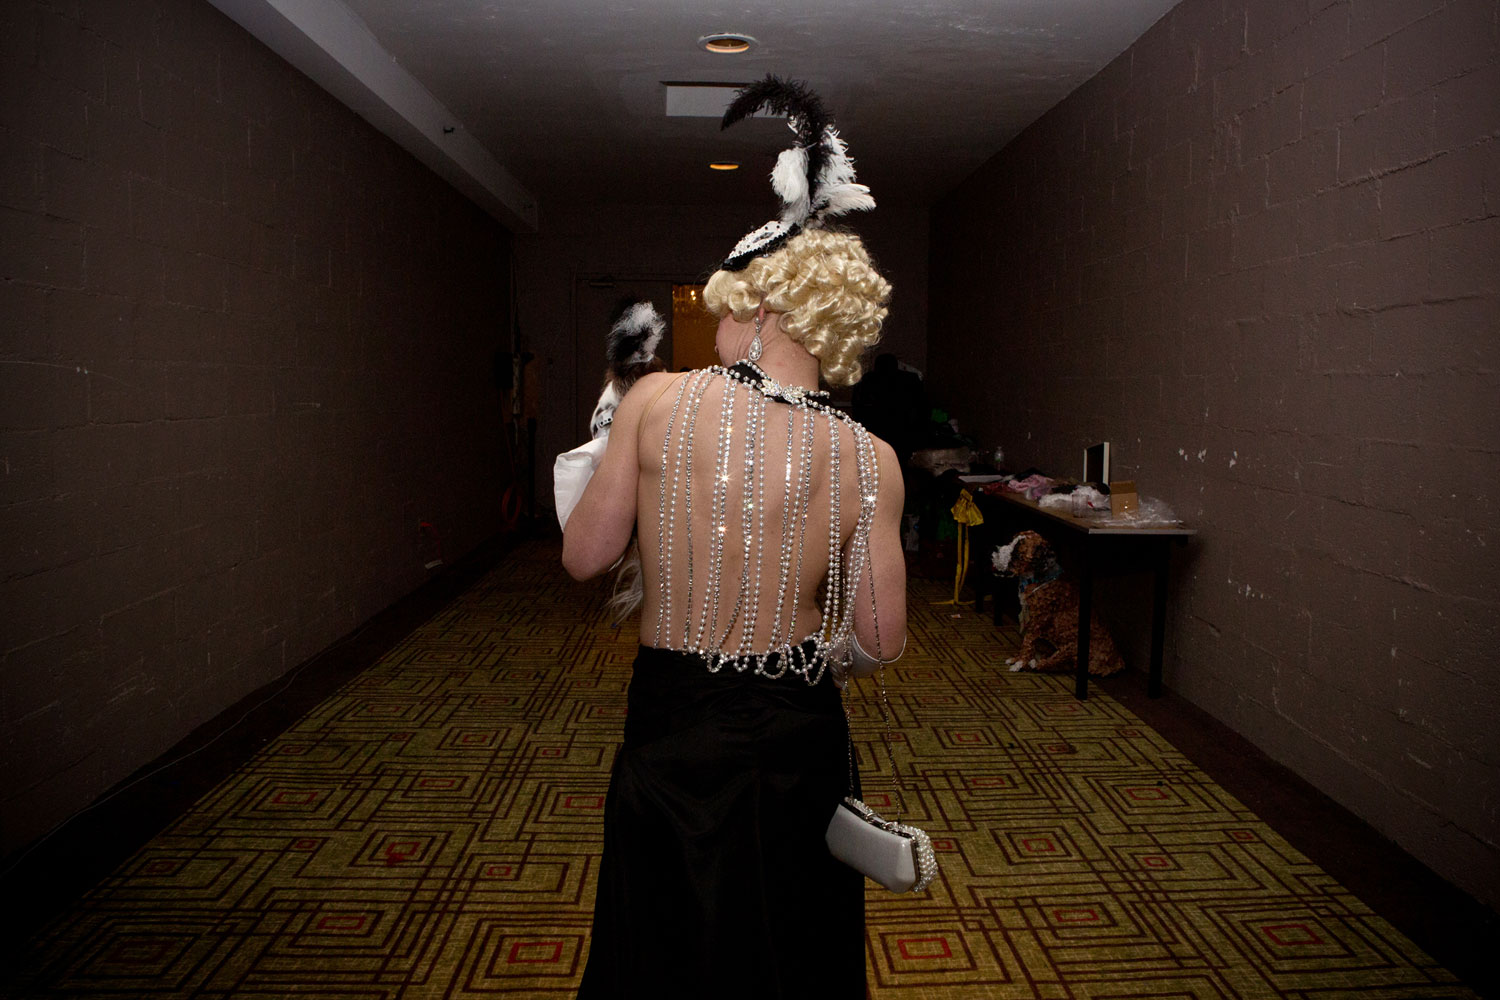 Summer Strand and her Chihuahua, Angel Song, at the Roaring Twenties Pet Fashion Show presented by Tropiclean and hosted by The Hotel Pennsylvania.